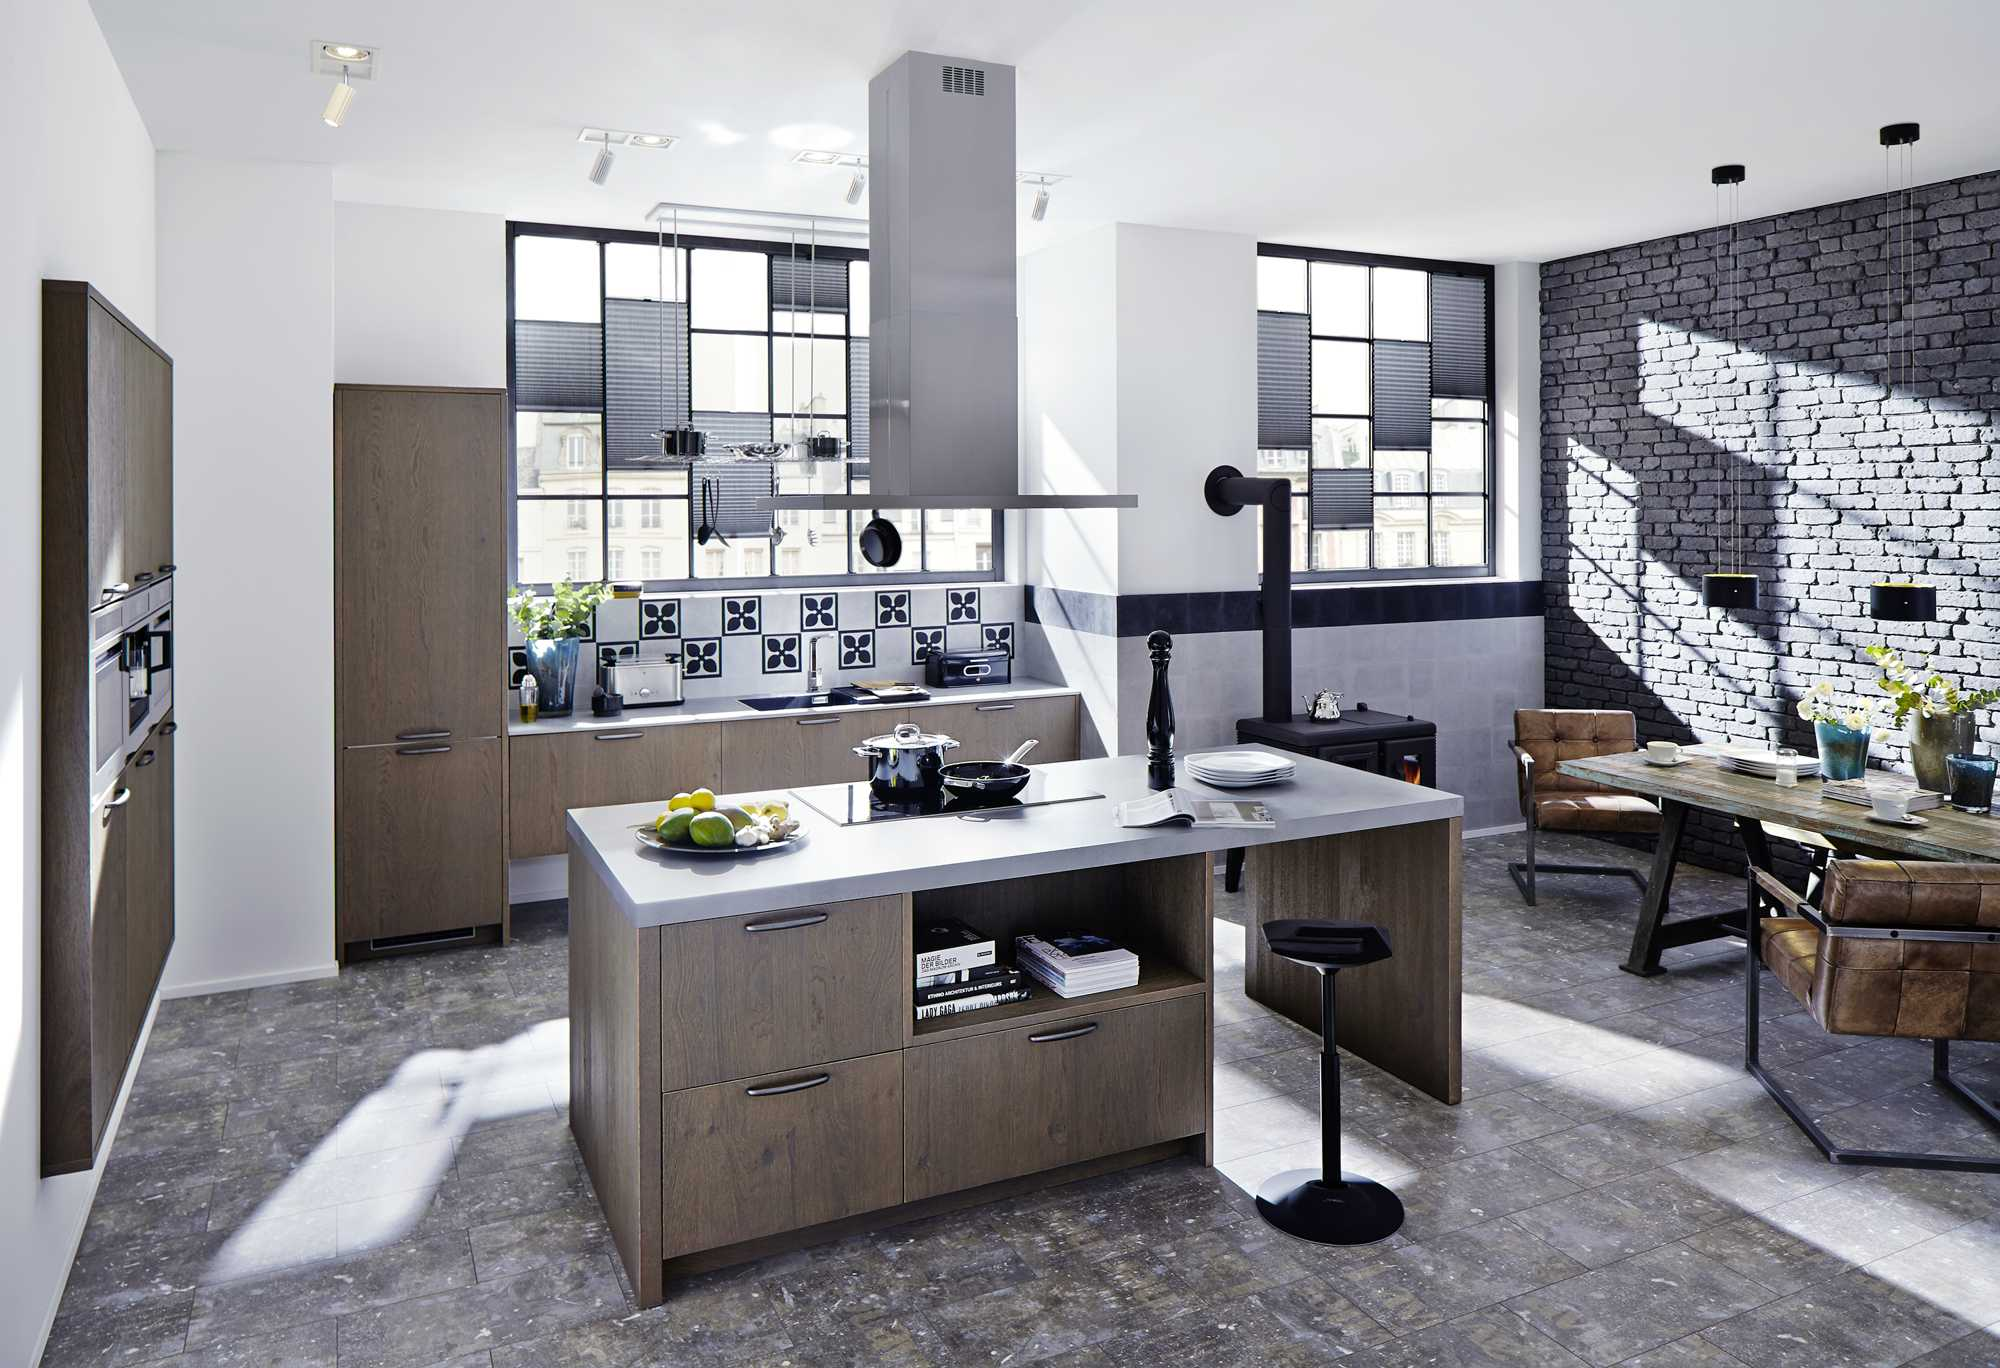 Memory Pastel Loam Kitchen. Build into wall Tall Cabinets